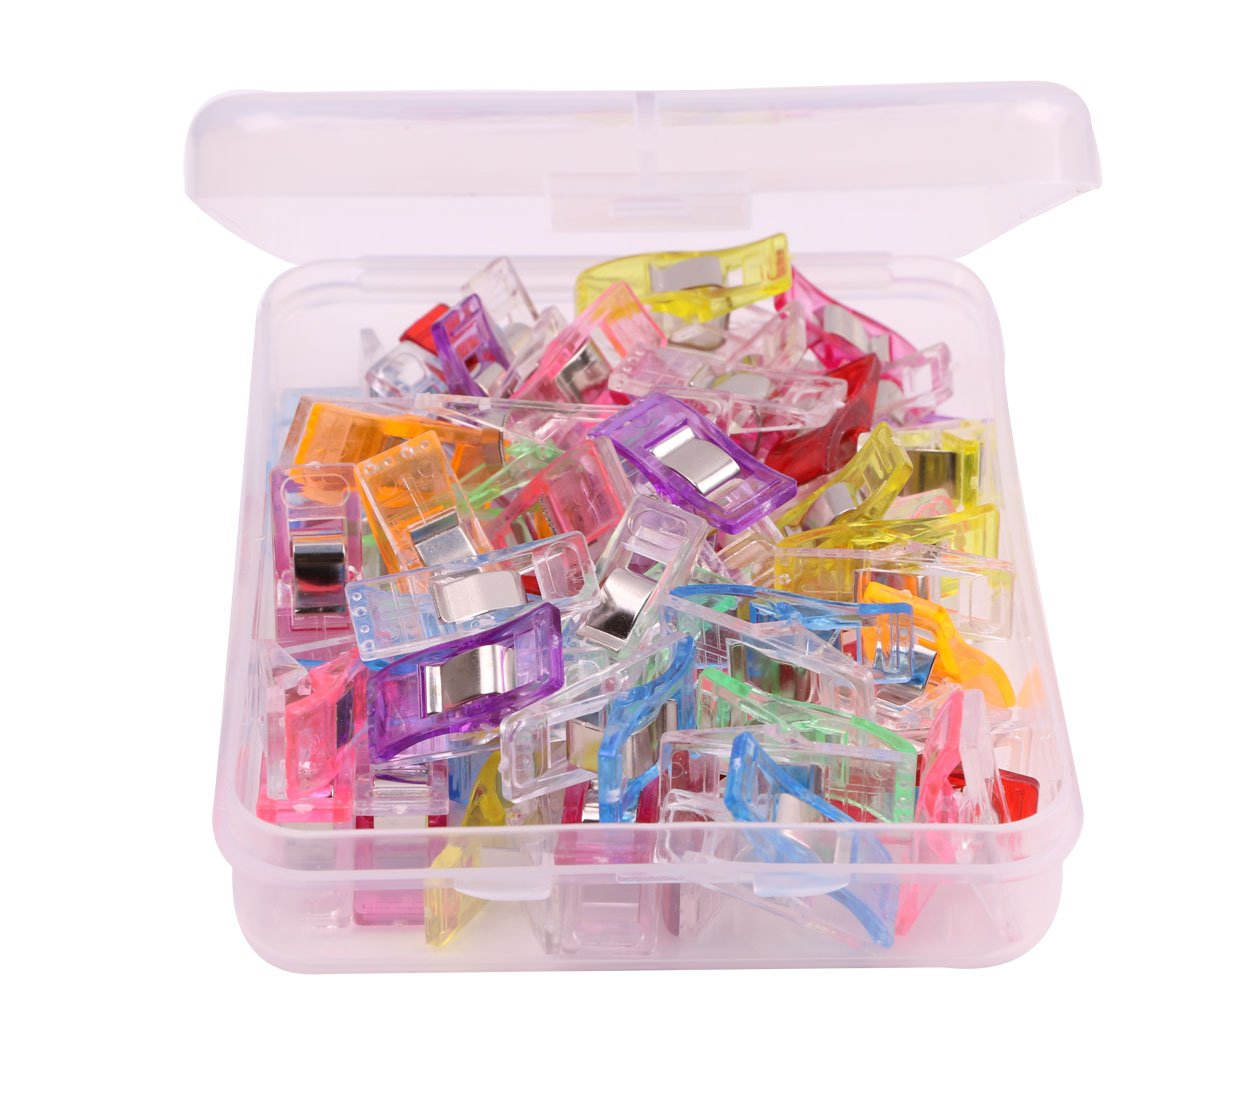 50PCS Multicolor Sewing Clip Set - Colorful Plastic Quilting Crocheting Craft Knit Wonder Clip for Sewing Quilting Crafting Knitting (9 colors) Penta Angel 4336995645